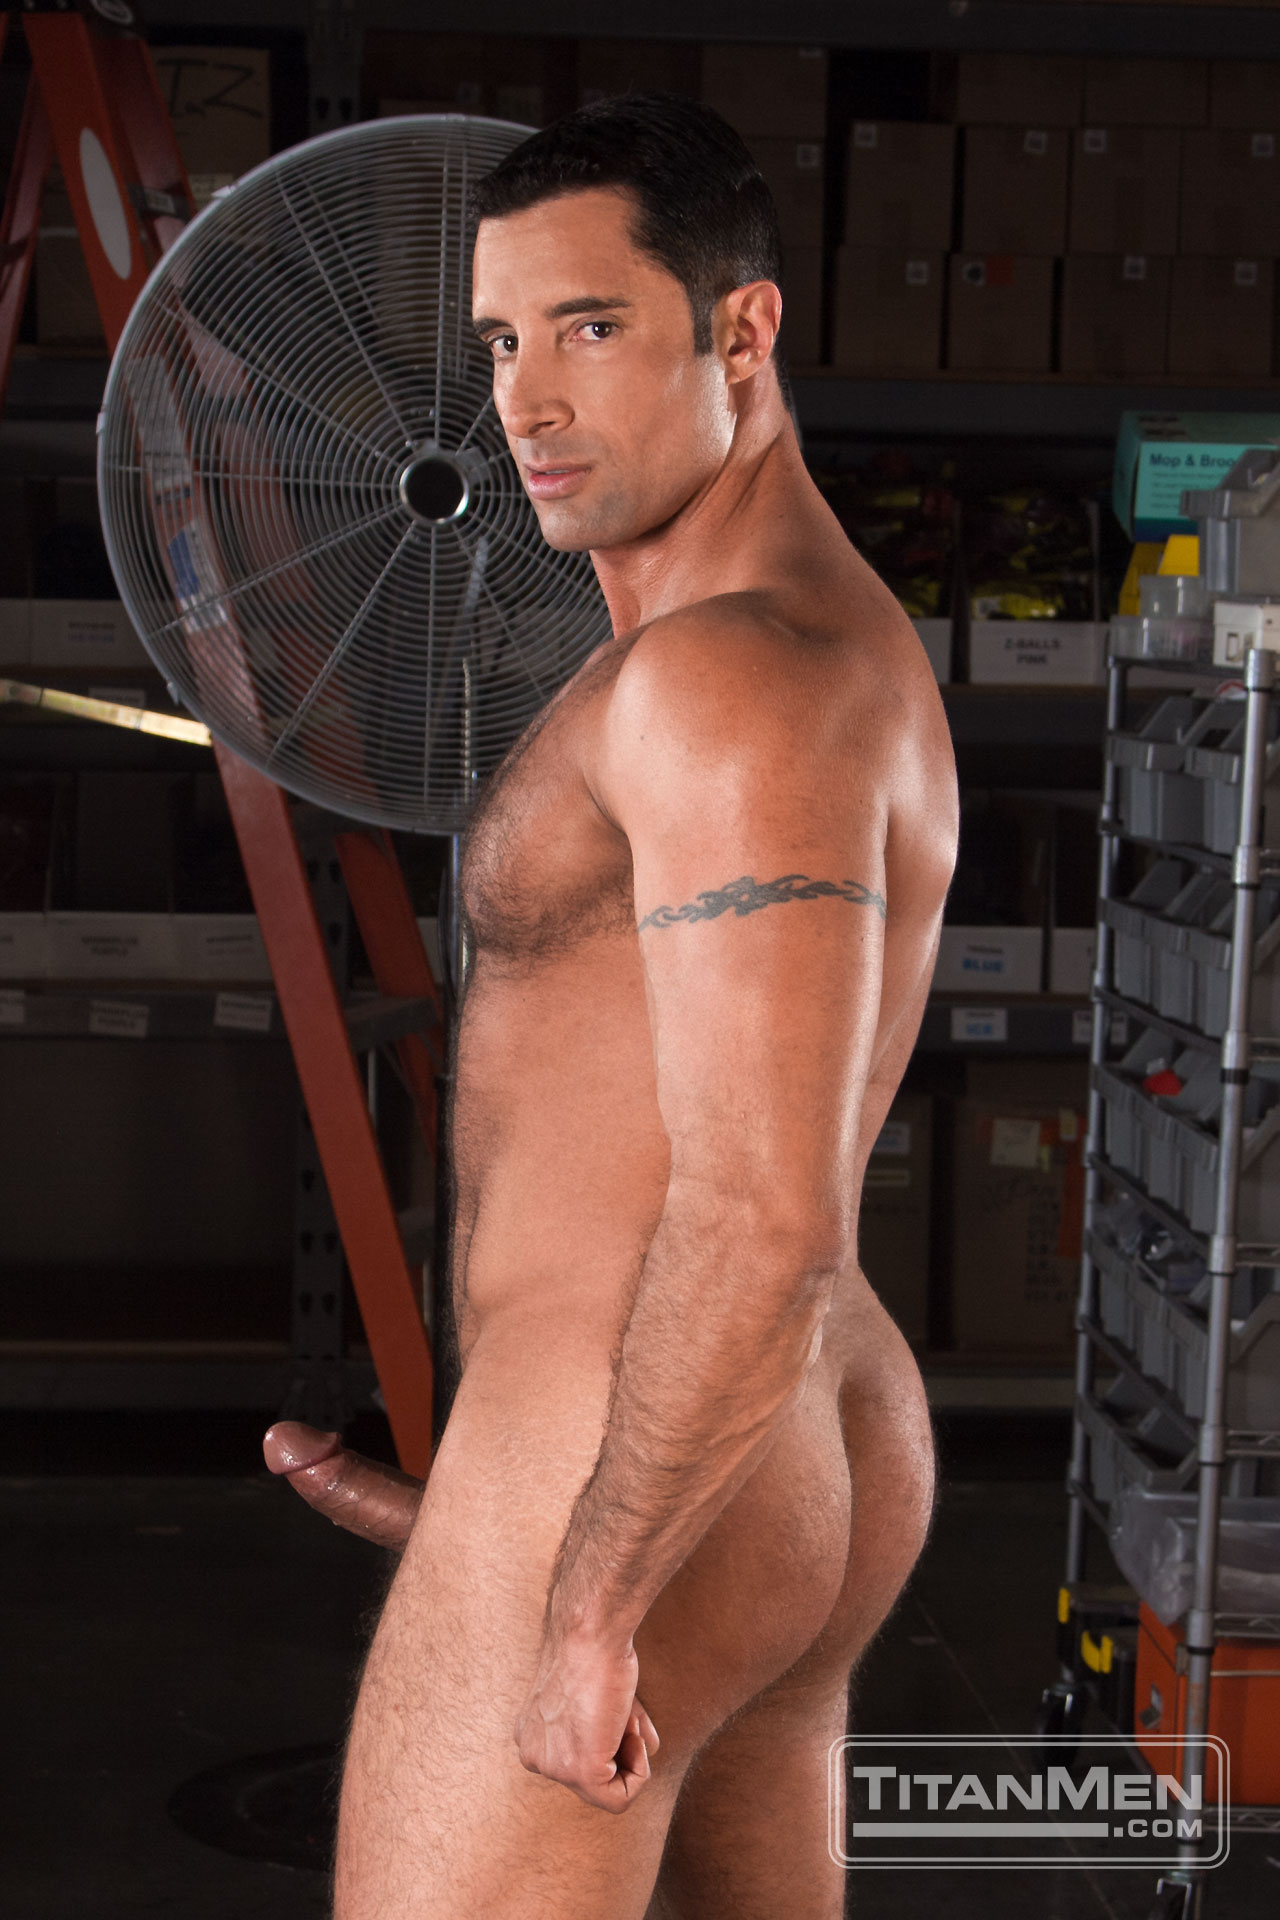 Hoak recommends Younghairy latino nudes